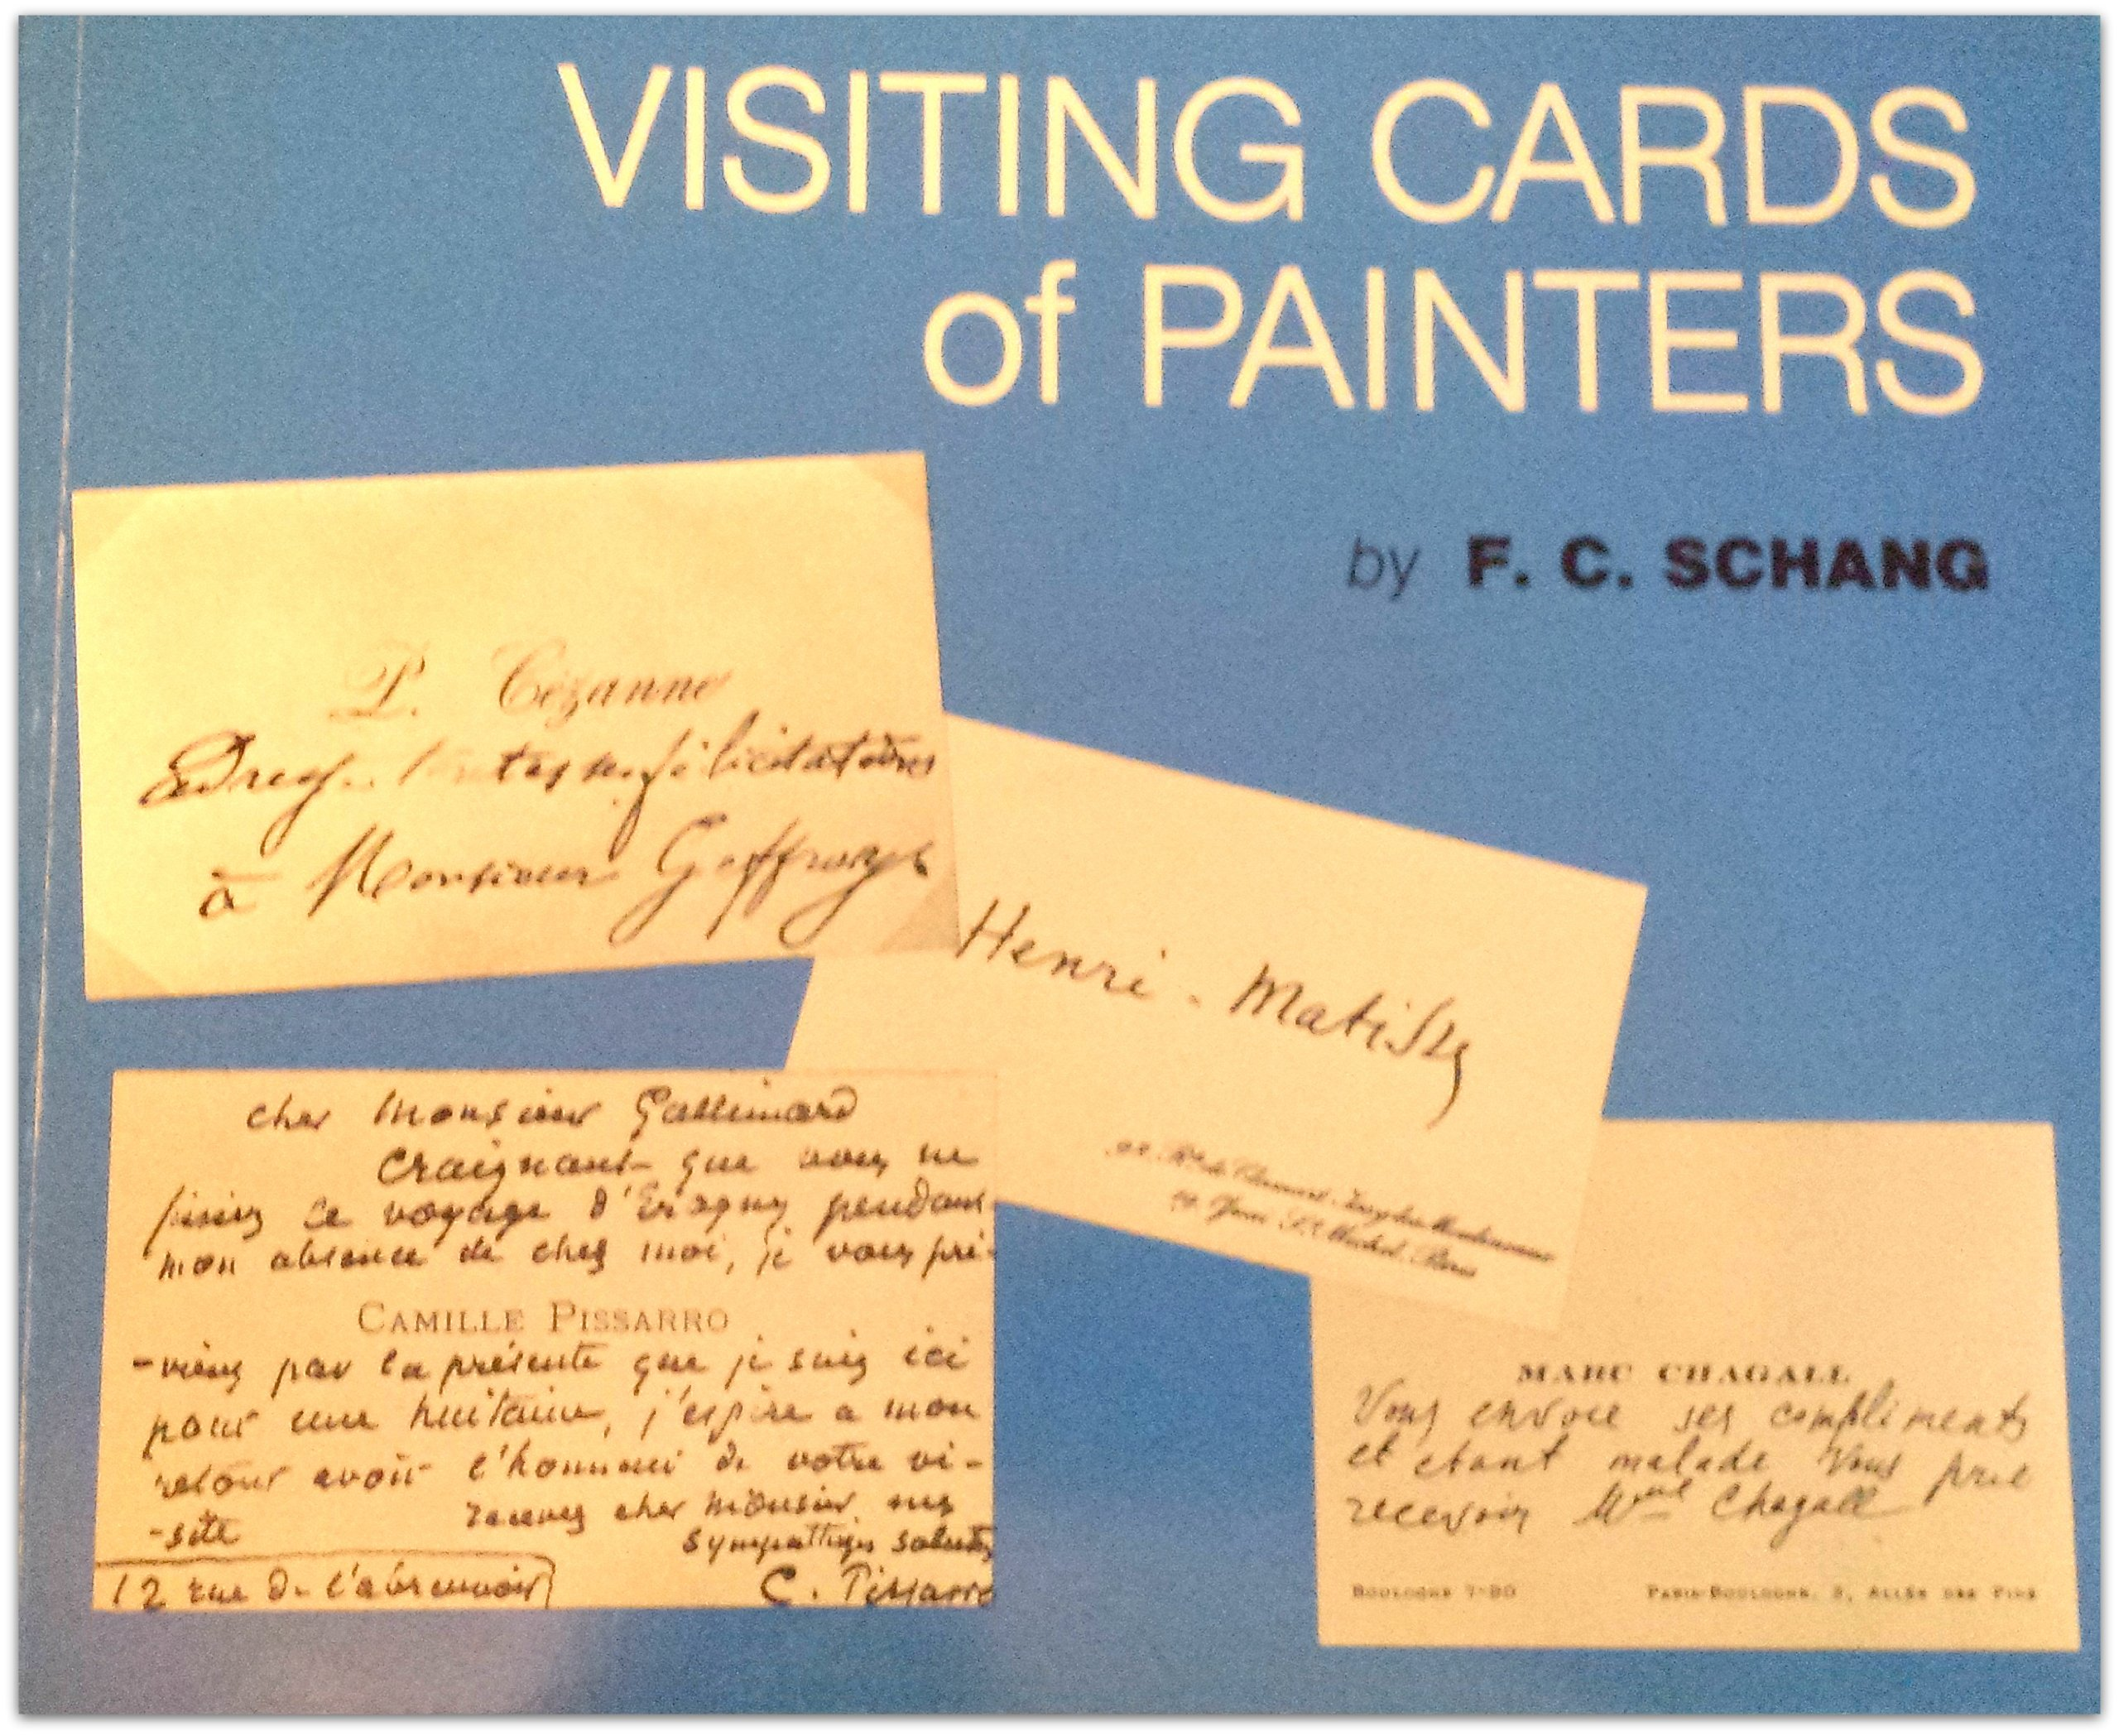 Visiting Cards of Painters: From the Collection of F.C. Schang with ...